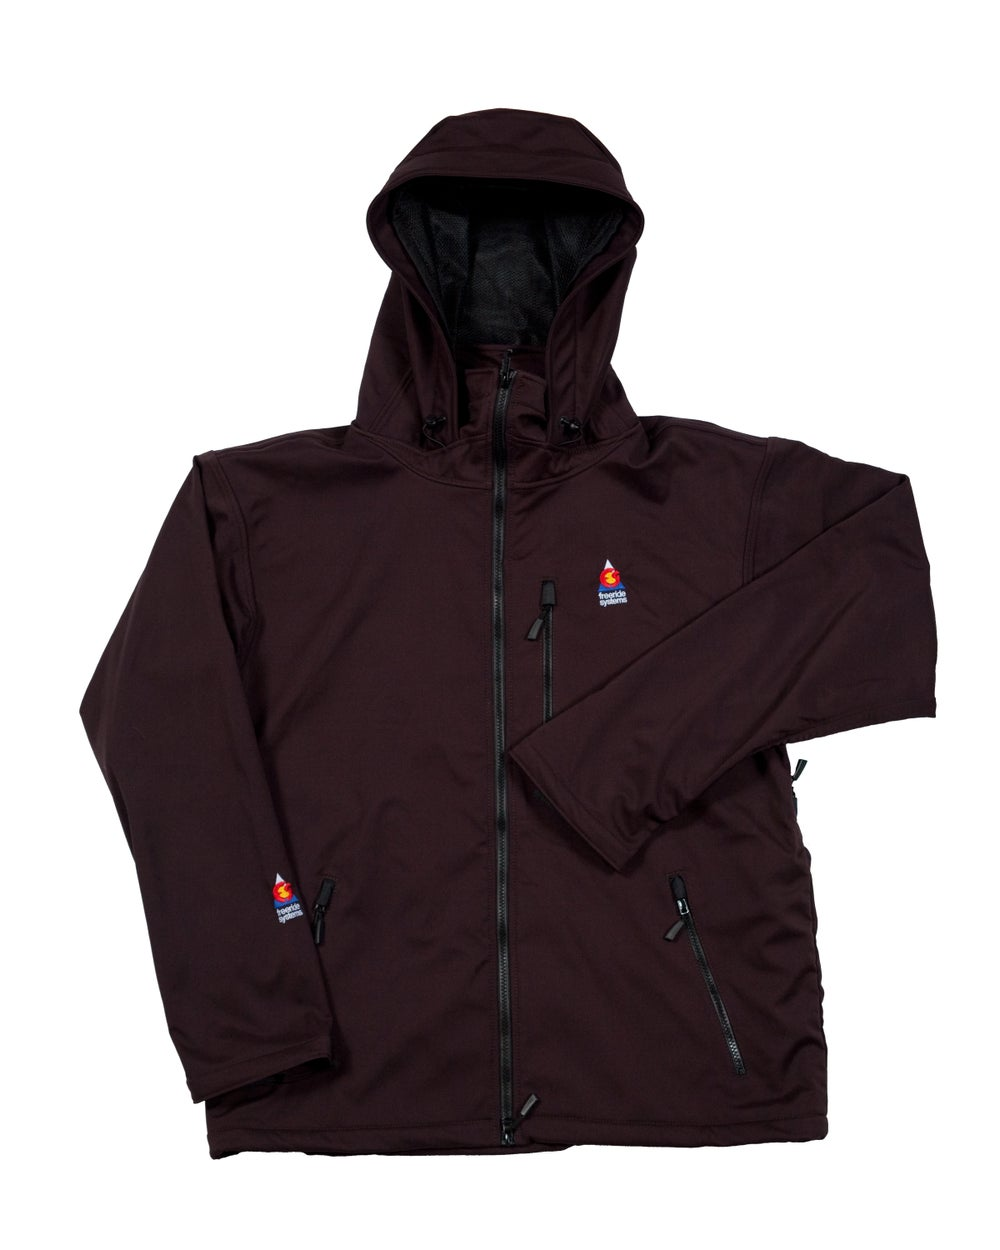 Image of Antero II Gore Black Cherry Hybrid Softshell Jacket Made in Colorado